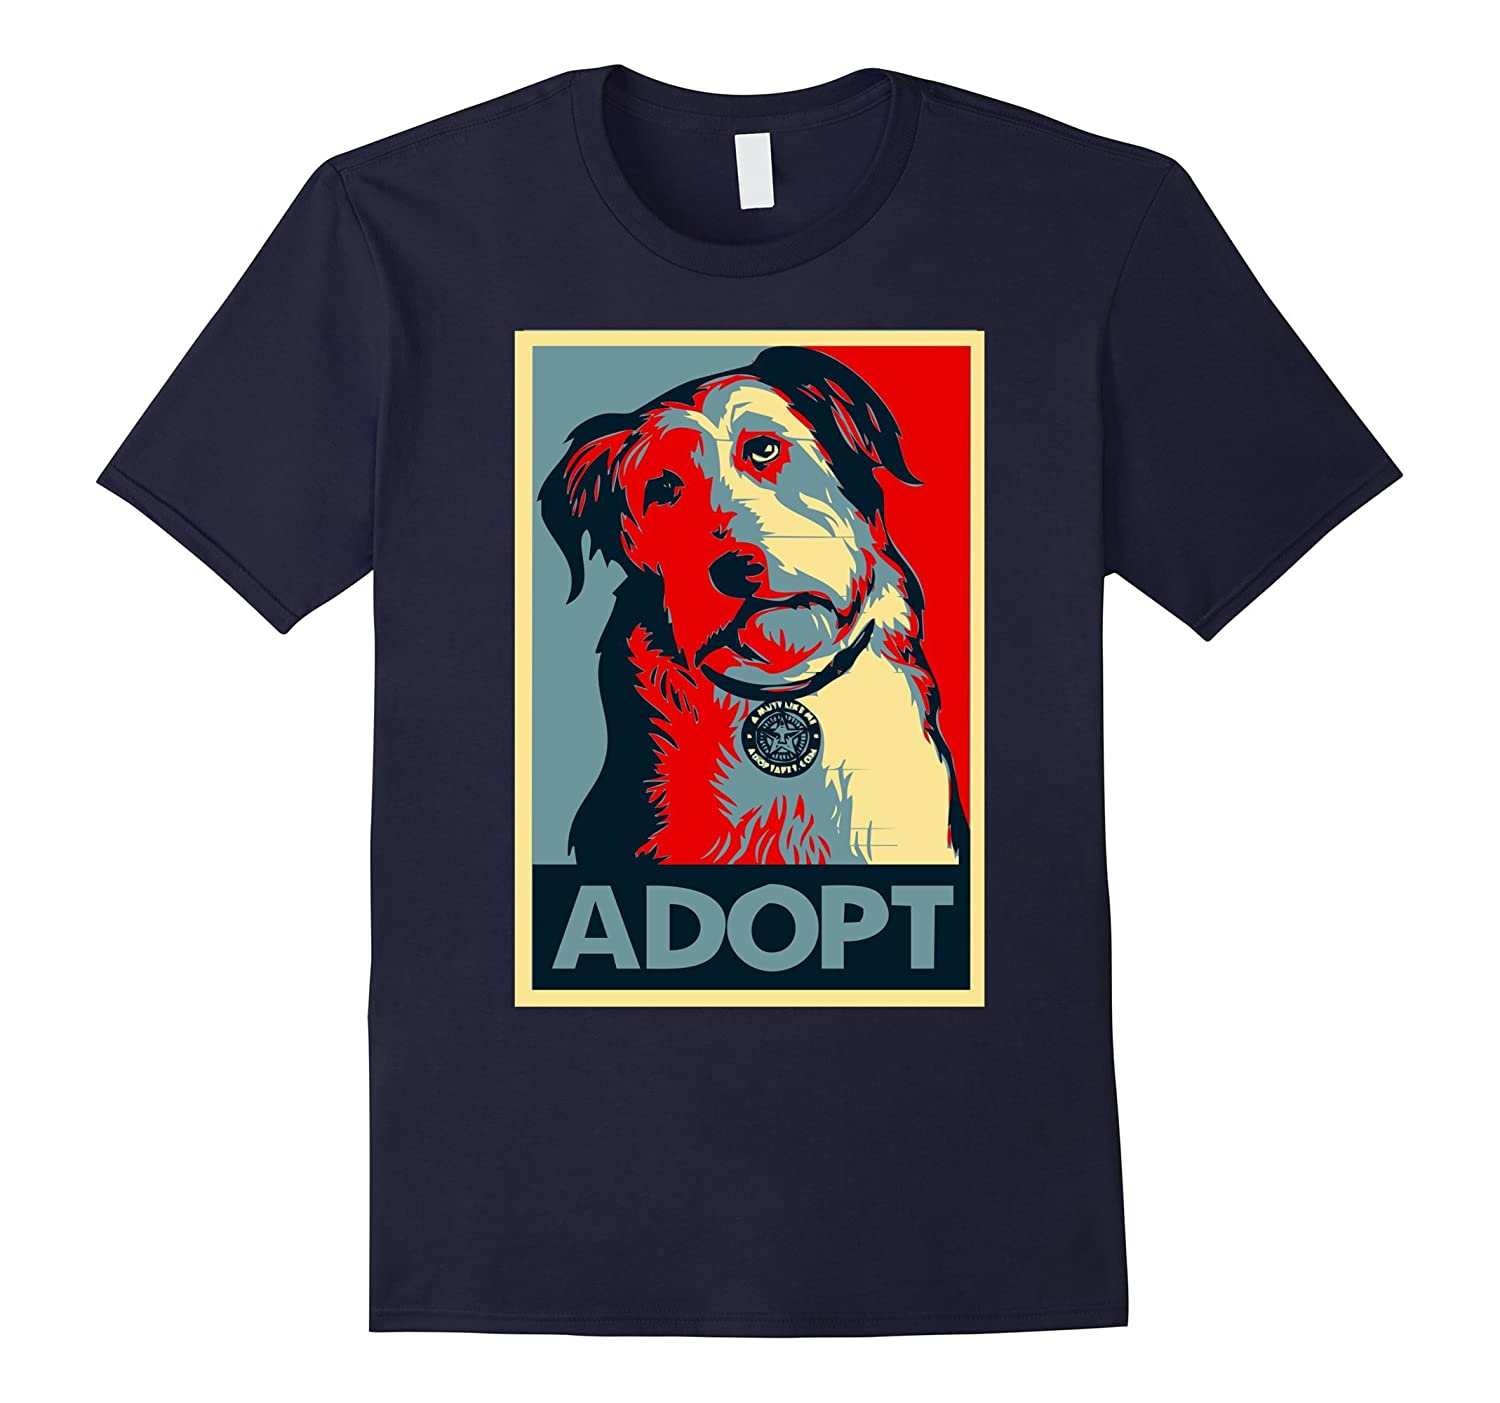 Adopt Dogs Tshirt, Rescue Dog Shirt, Funny Dog Shirts-BN